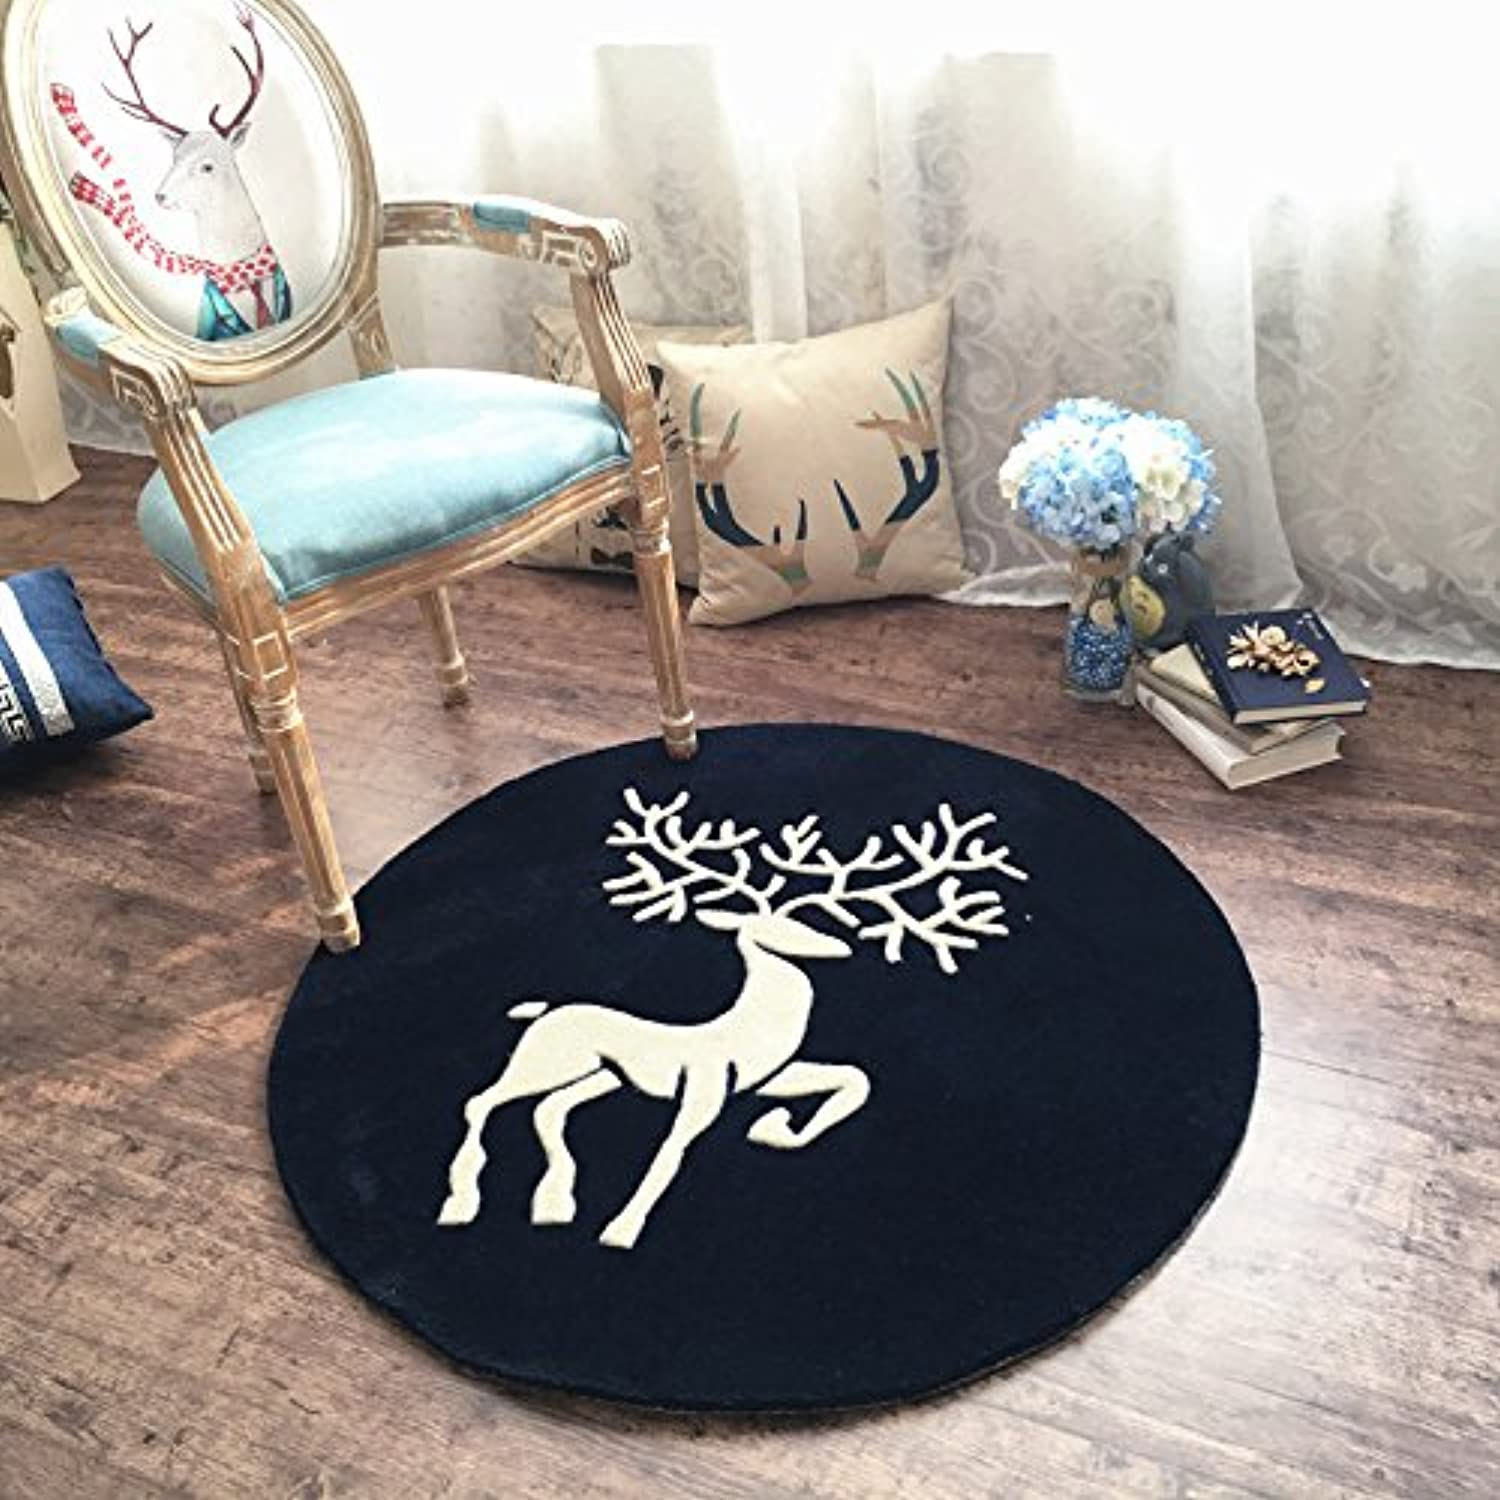 Living Room Bedroom Study Round Carpet Bedside Chair Chair Computer Chair Round Carpet Living Room Sofa Coffee Table Round mat (Size   Diameter 100cm)